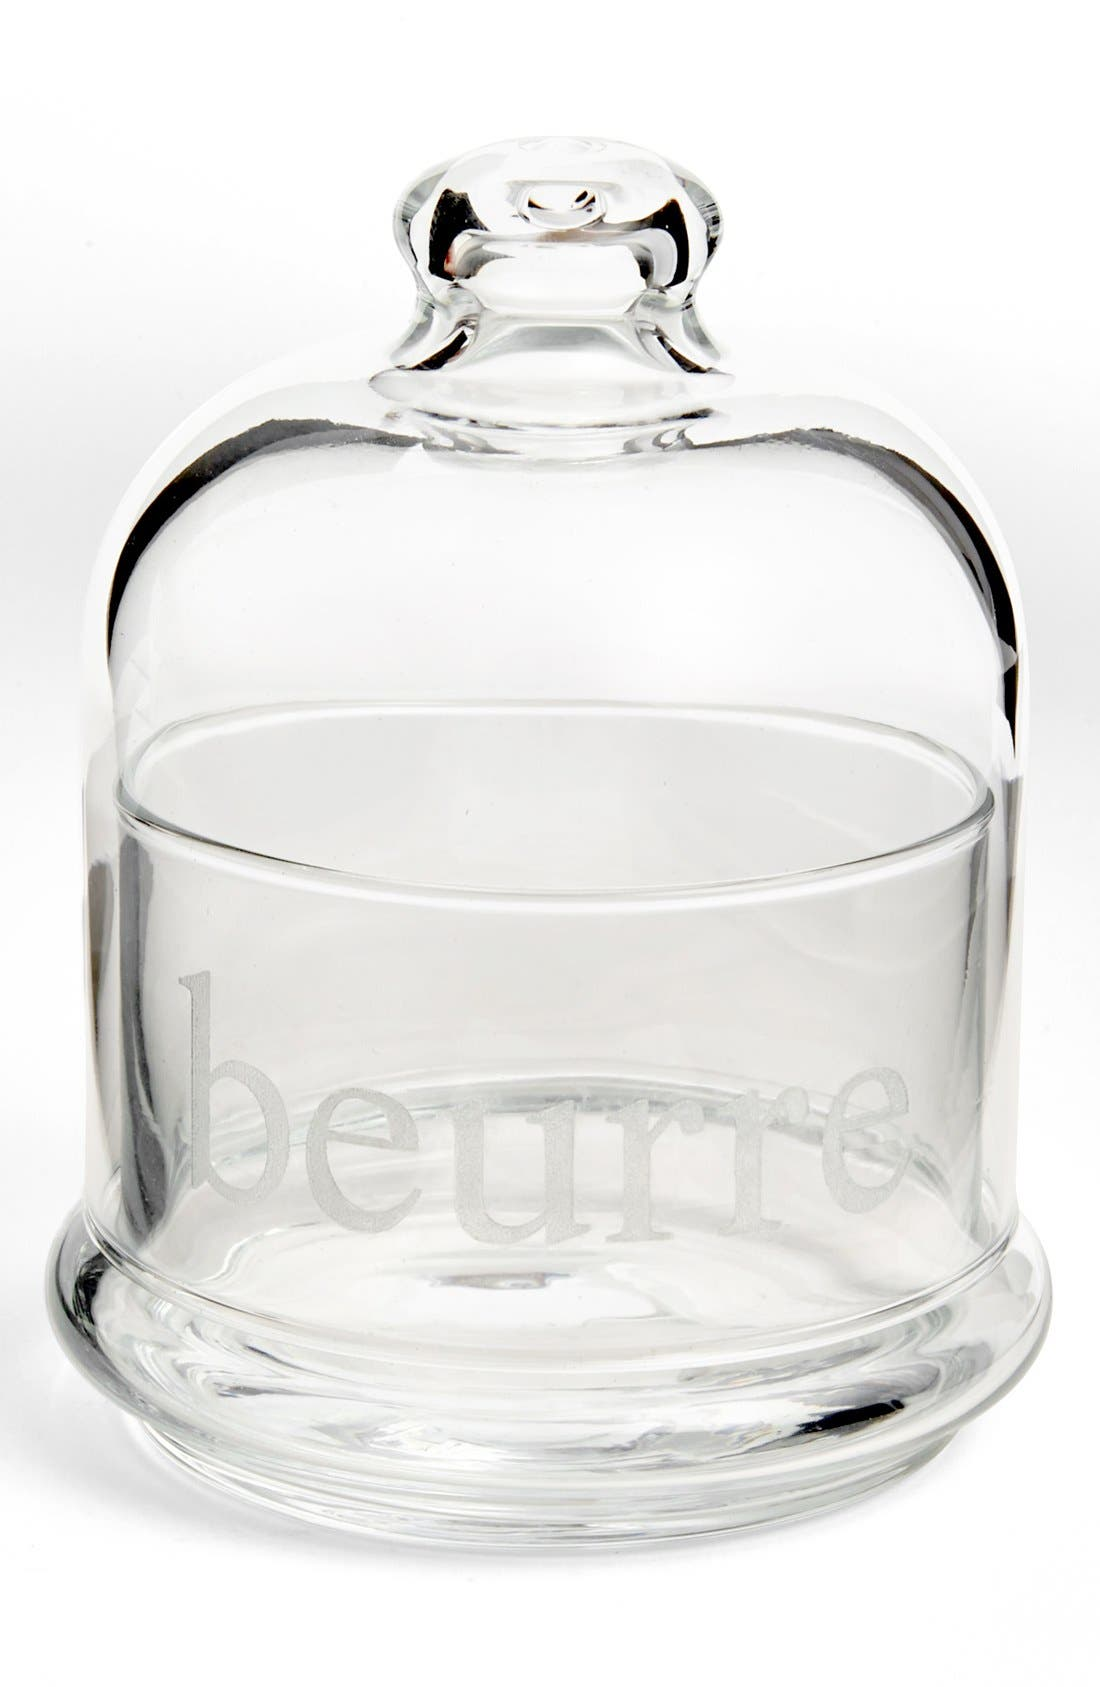 Main Image - Milk and Honey Luxuries 'Beurre' Butter Dish